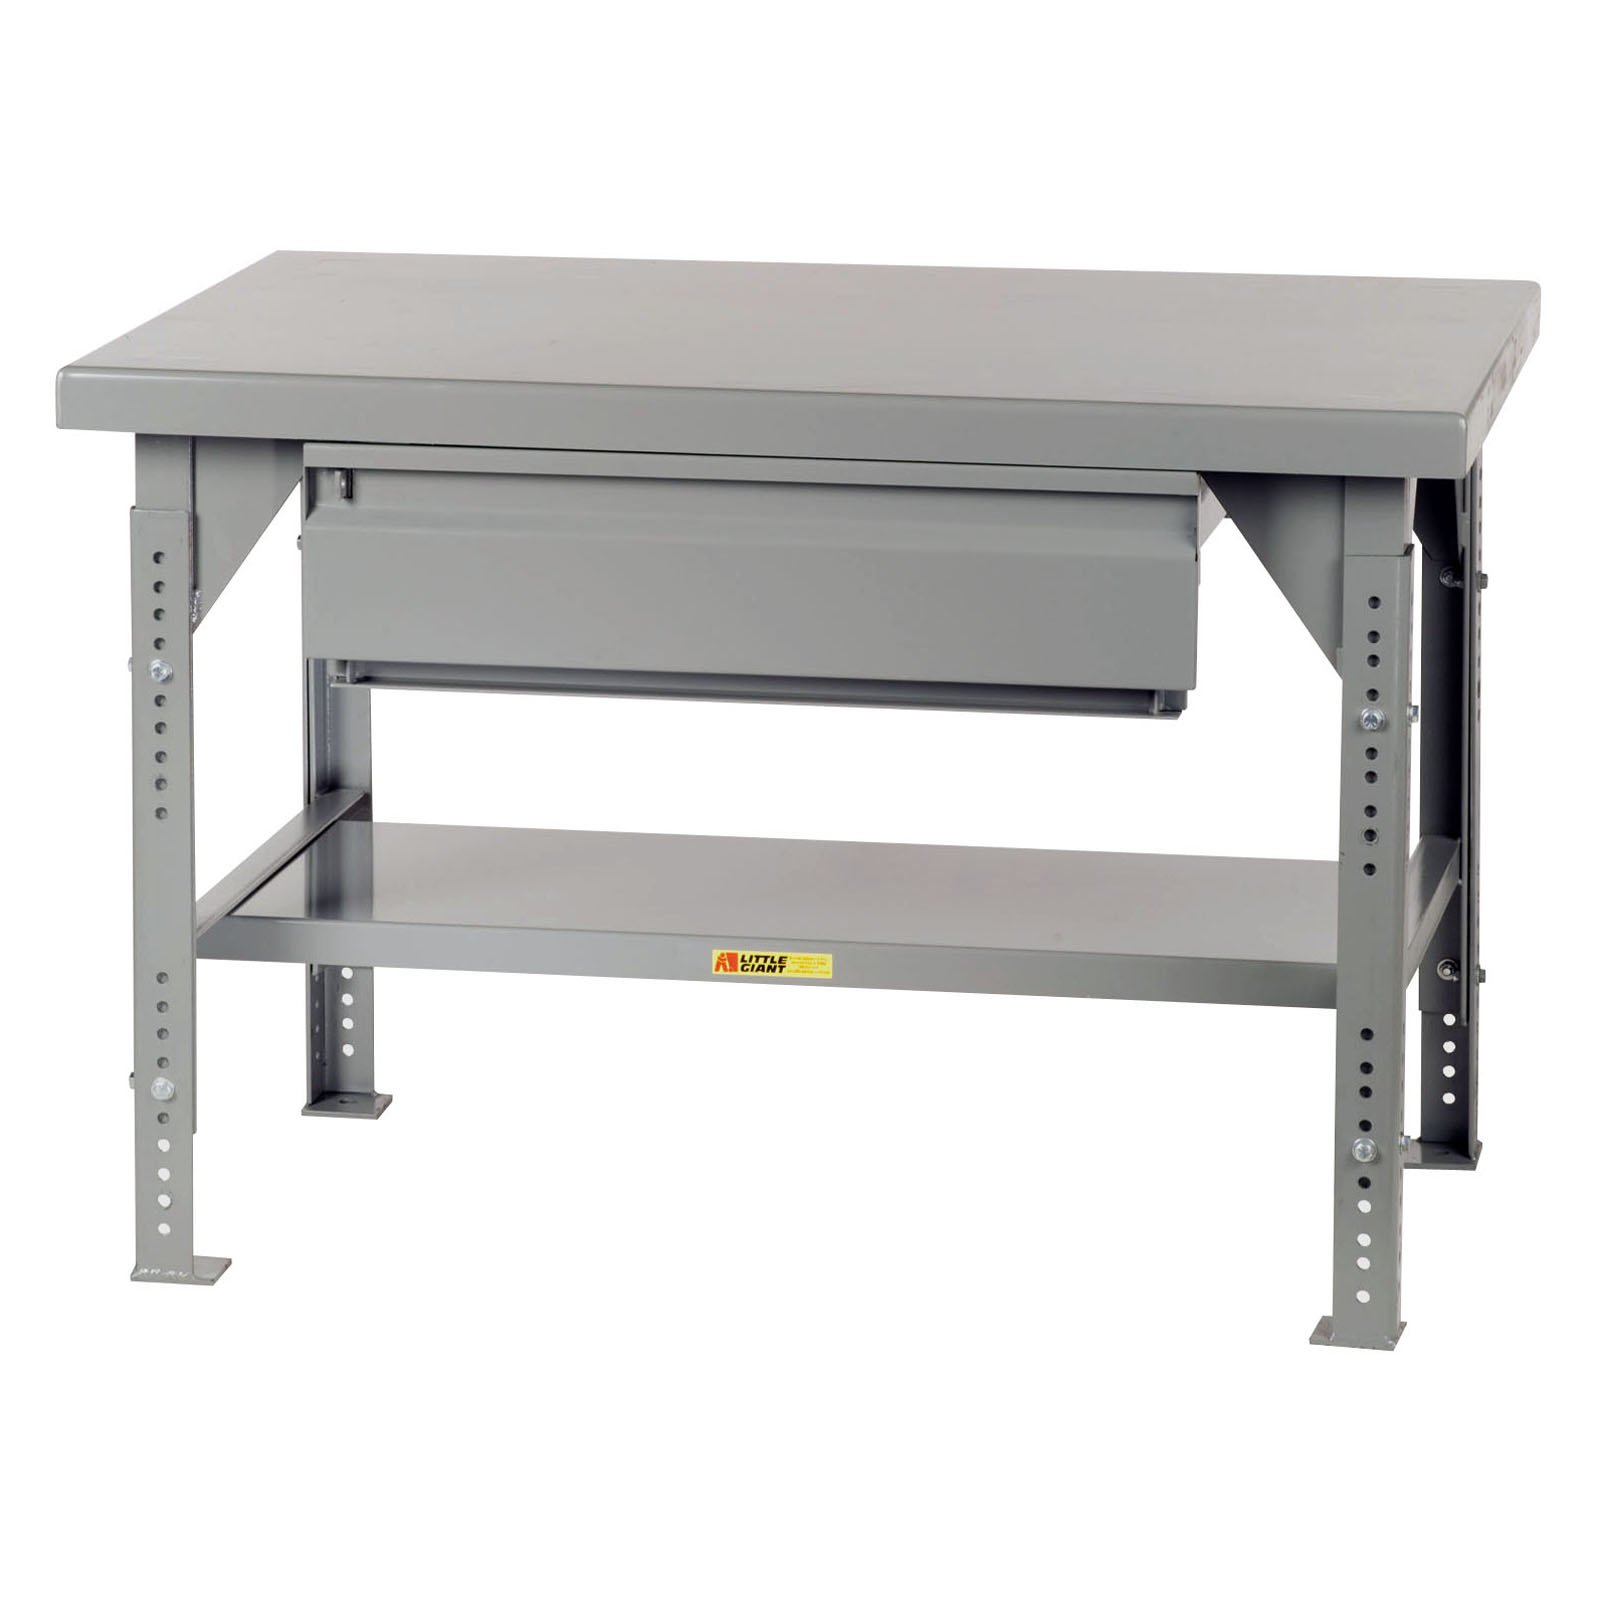 Little Giant Heavy-Duty Workbench with Drawer Adjustable 36 x 72 in. by Brennan Equipment and Manufacturing Inc